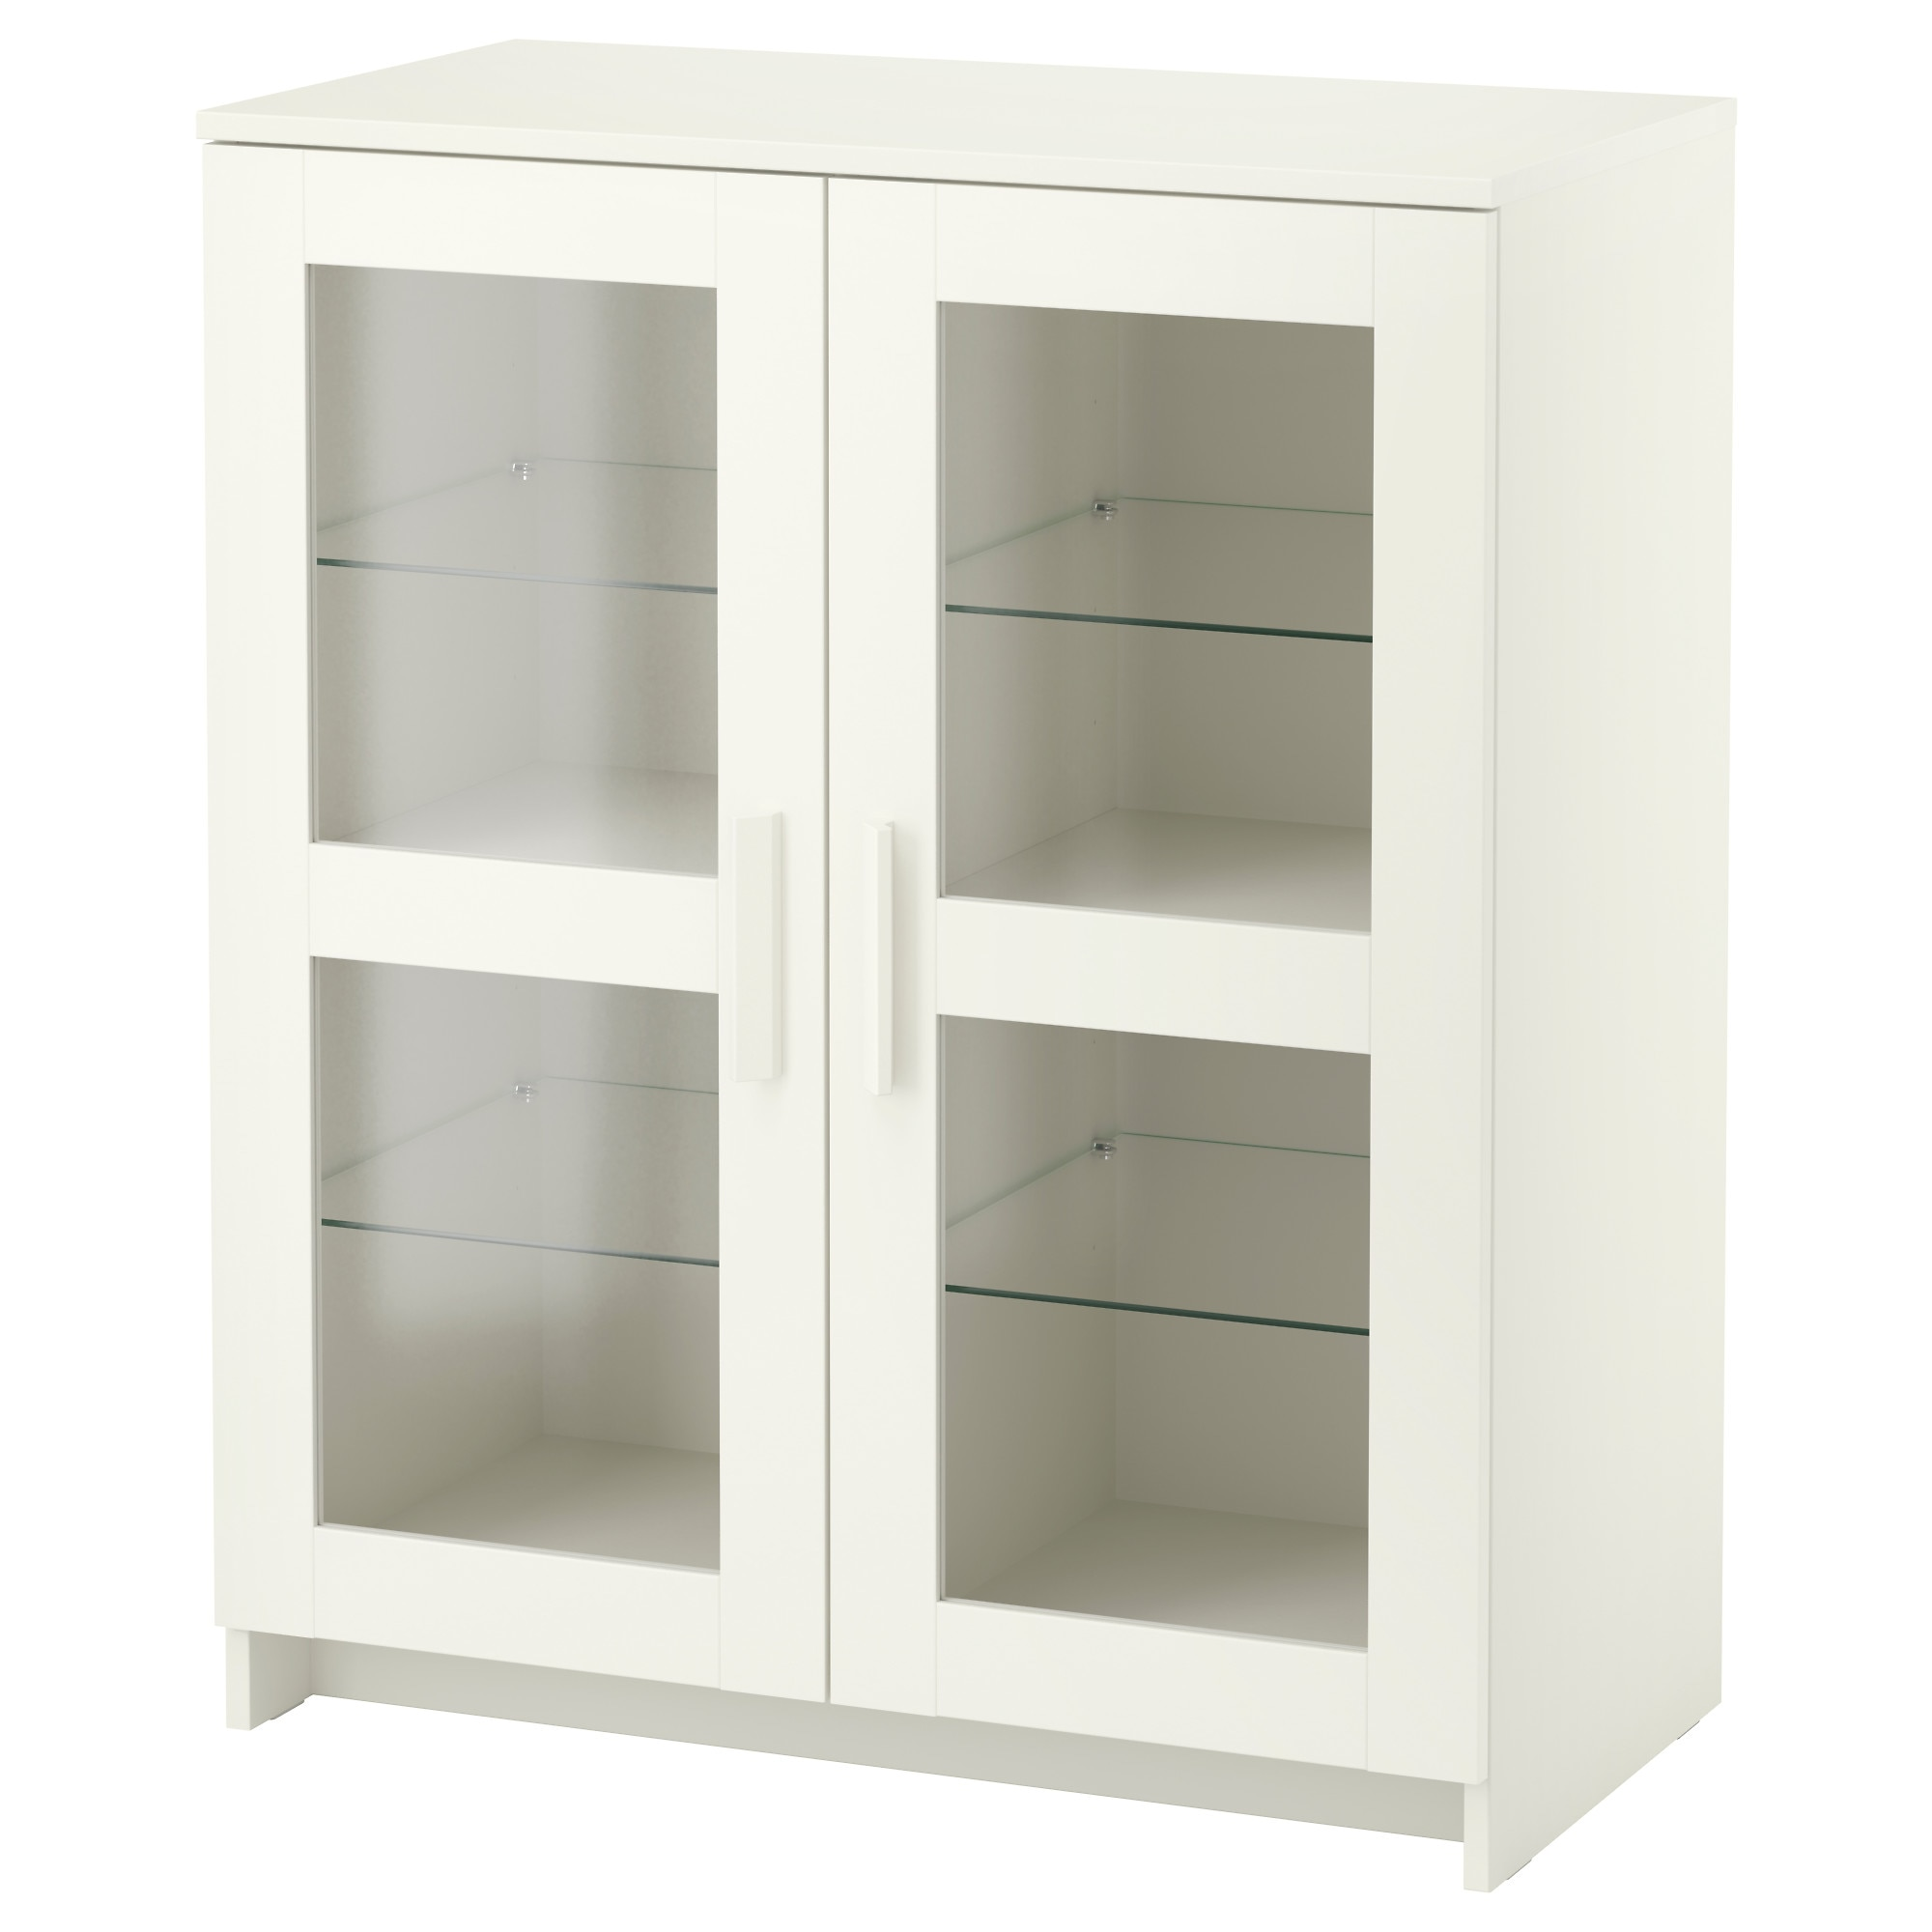 High Quality BRIMNES Cabinet With Doors   Glass/white   IKEA